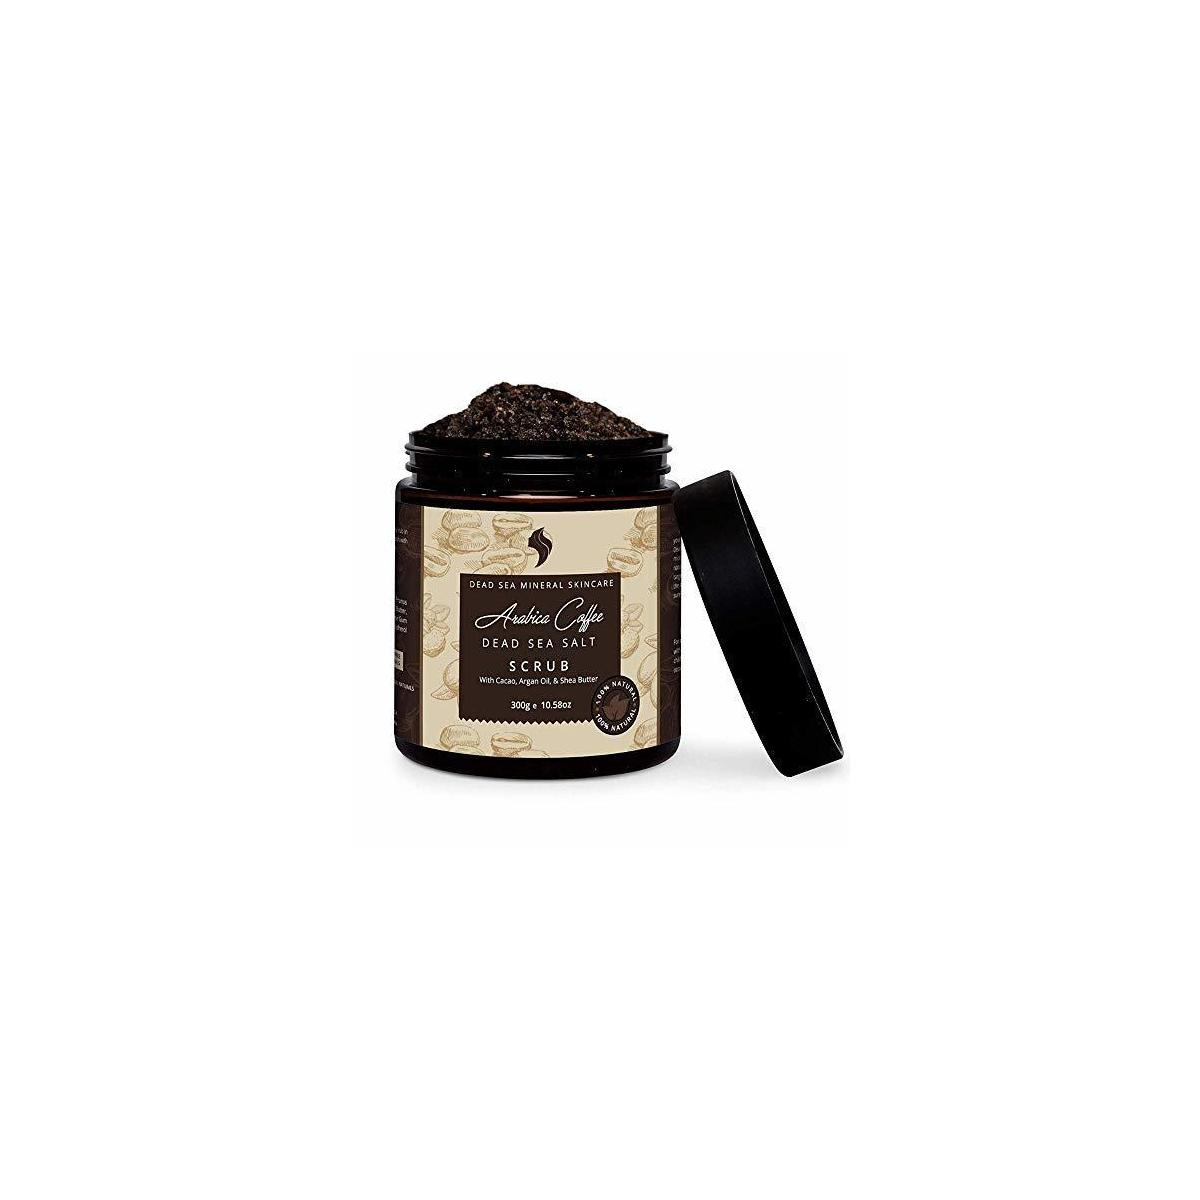 Natural and Organic Coffee Scrub with Dead Sea Salt, Coconut Oil and Shea Butter - Face Scrub & Exfoliating Body Scrub. Best for Acne Treatment, Cellulite, Stretch Marks and Varicose Veins